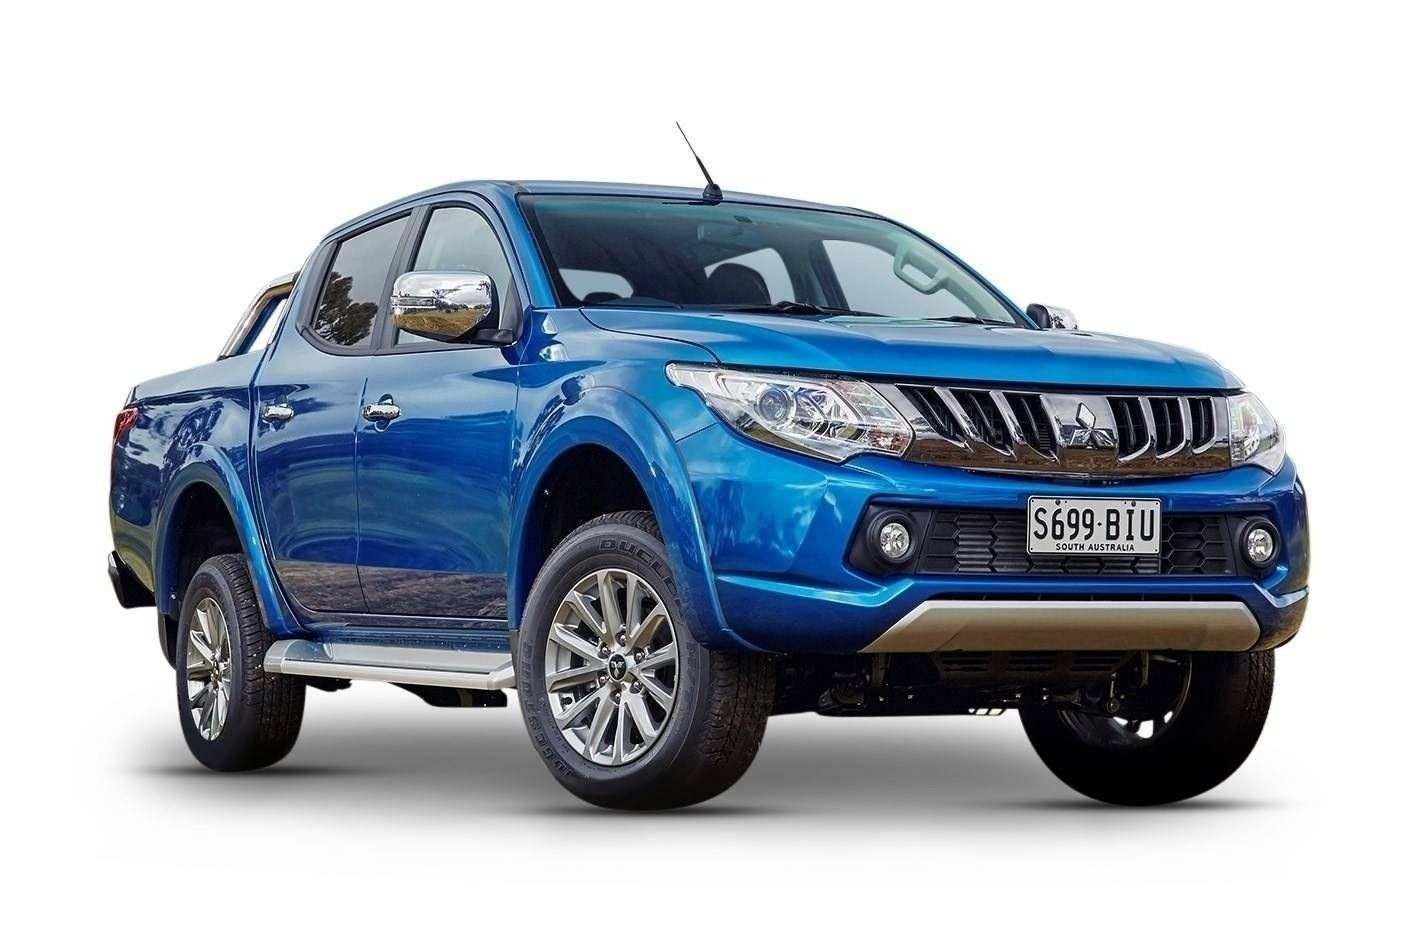 27 New 2019 Mitsubishi Triton Perfect Outdoor Configurations with 2019 Mitsubishi Triton Perfect Outdoor